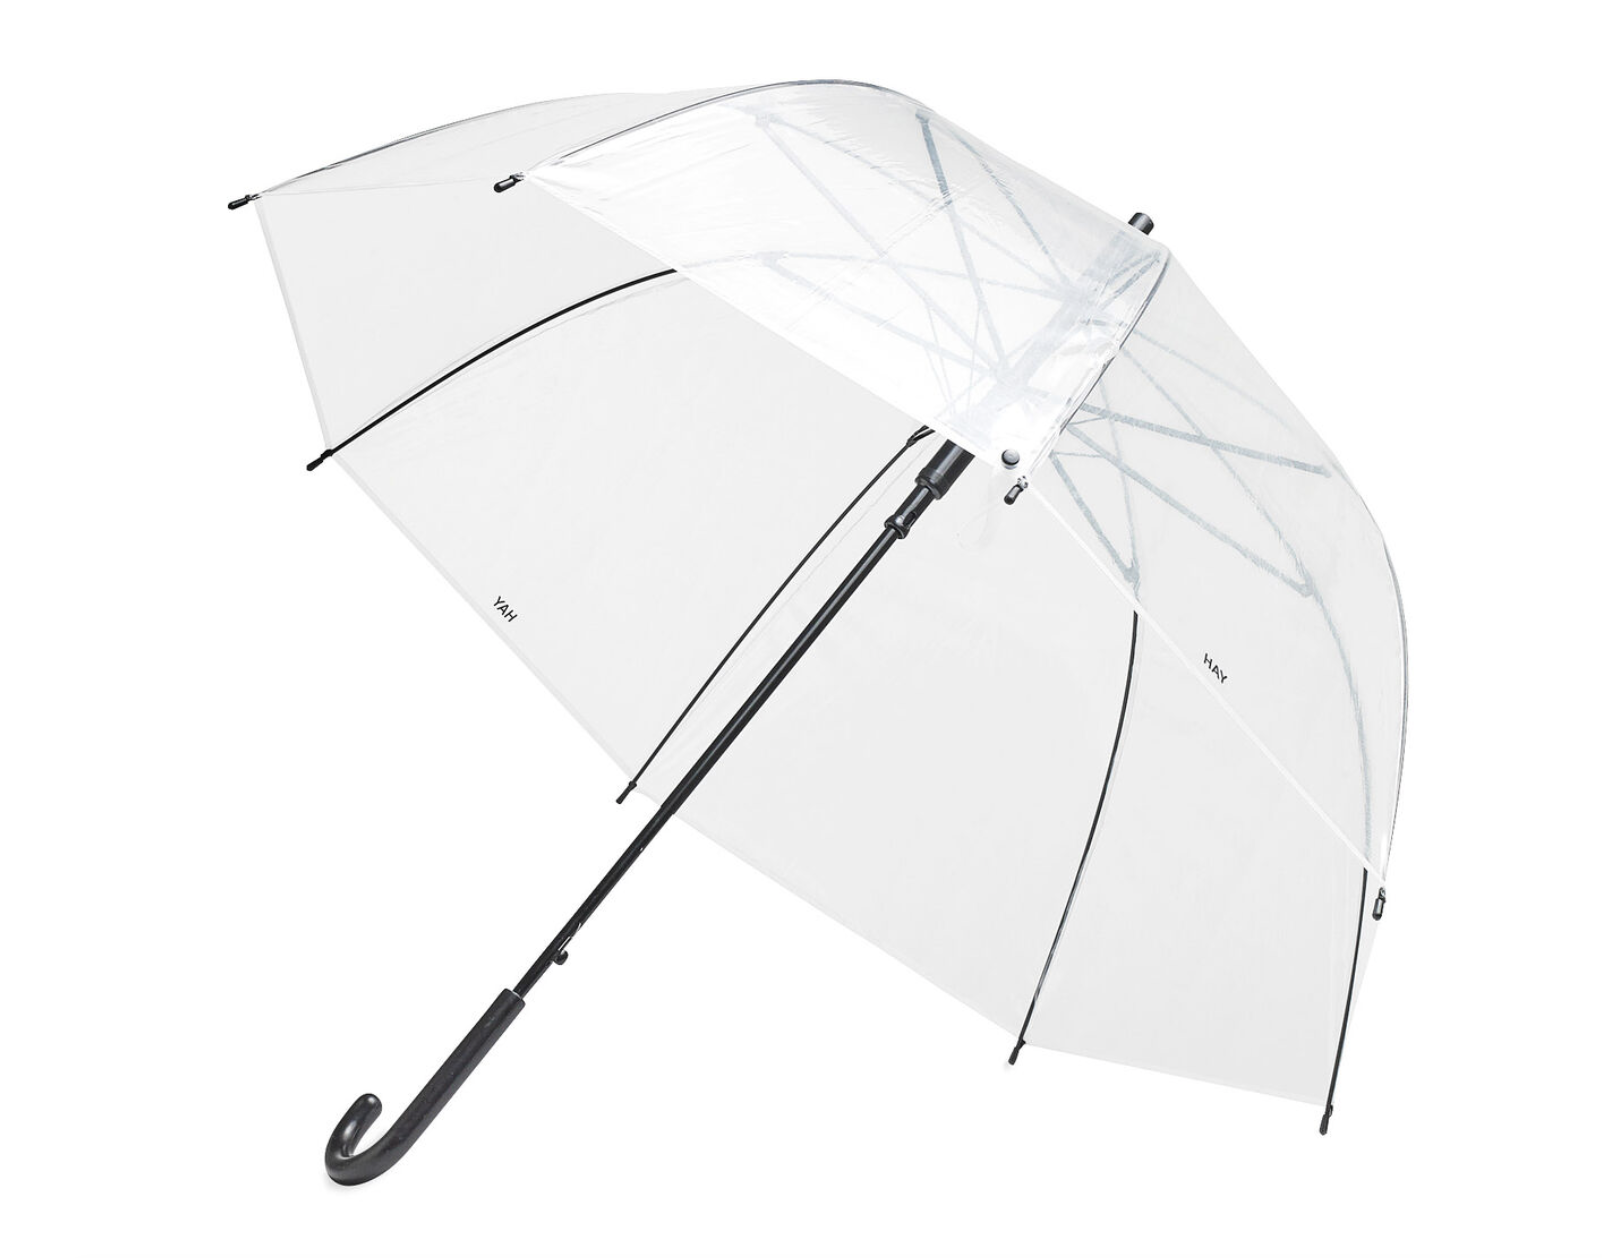 hay clear umbrella